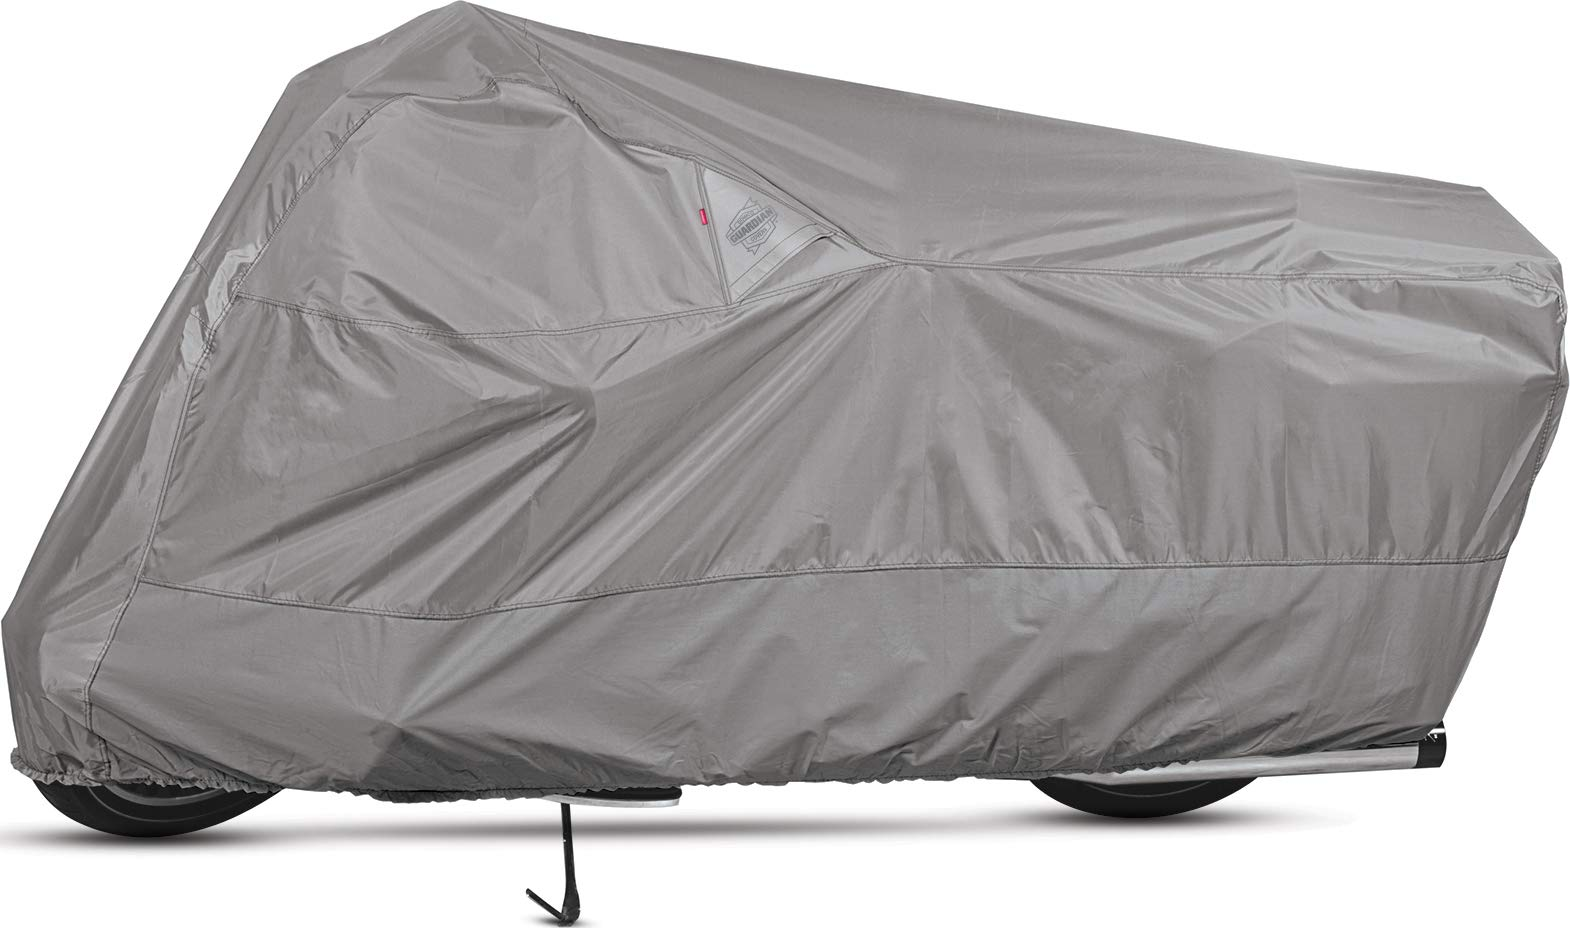 Dowco Guardian 50004-07 WeatherAll Plus Indoor/Outdoor Waterproof Motorcycle Cover: Grey, X-Large by Dowco